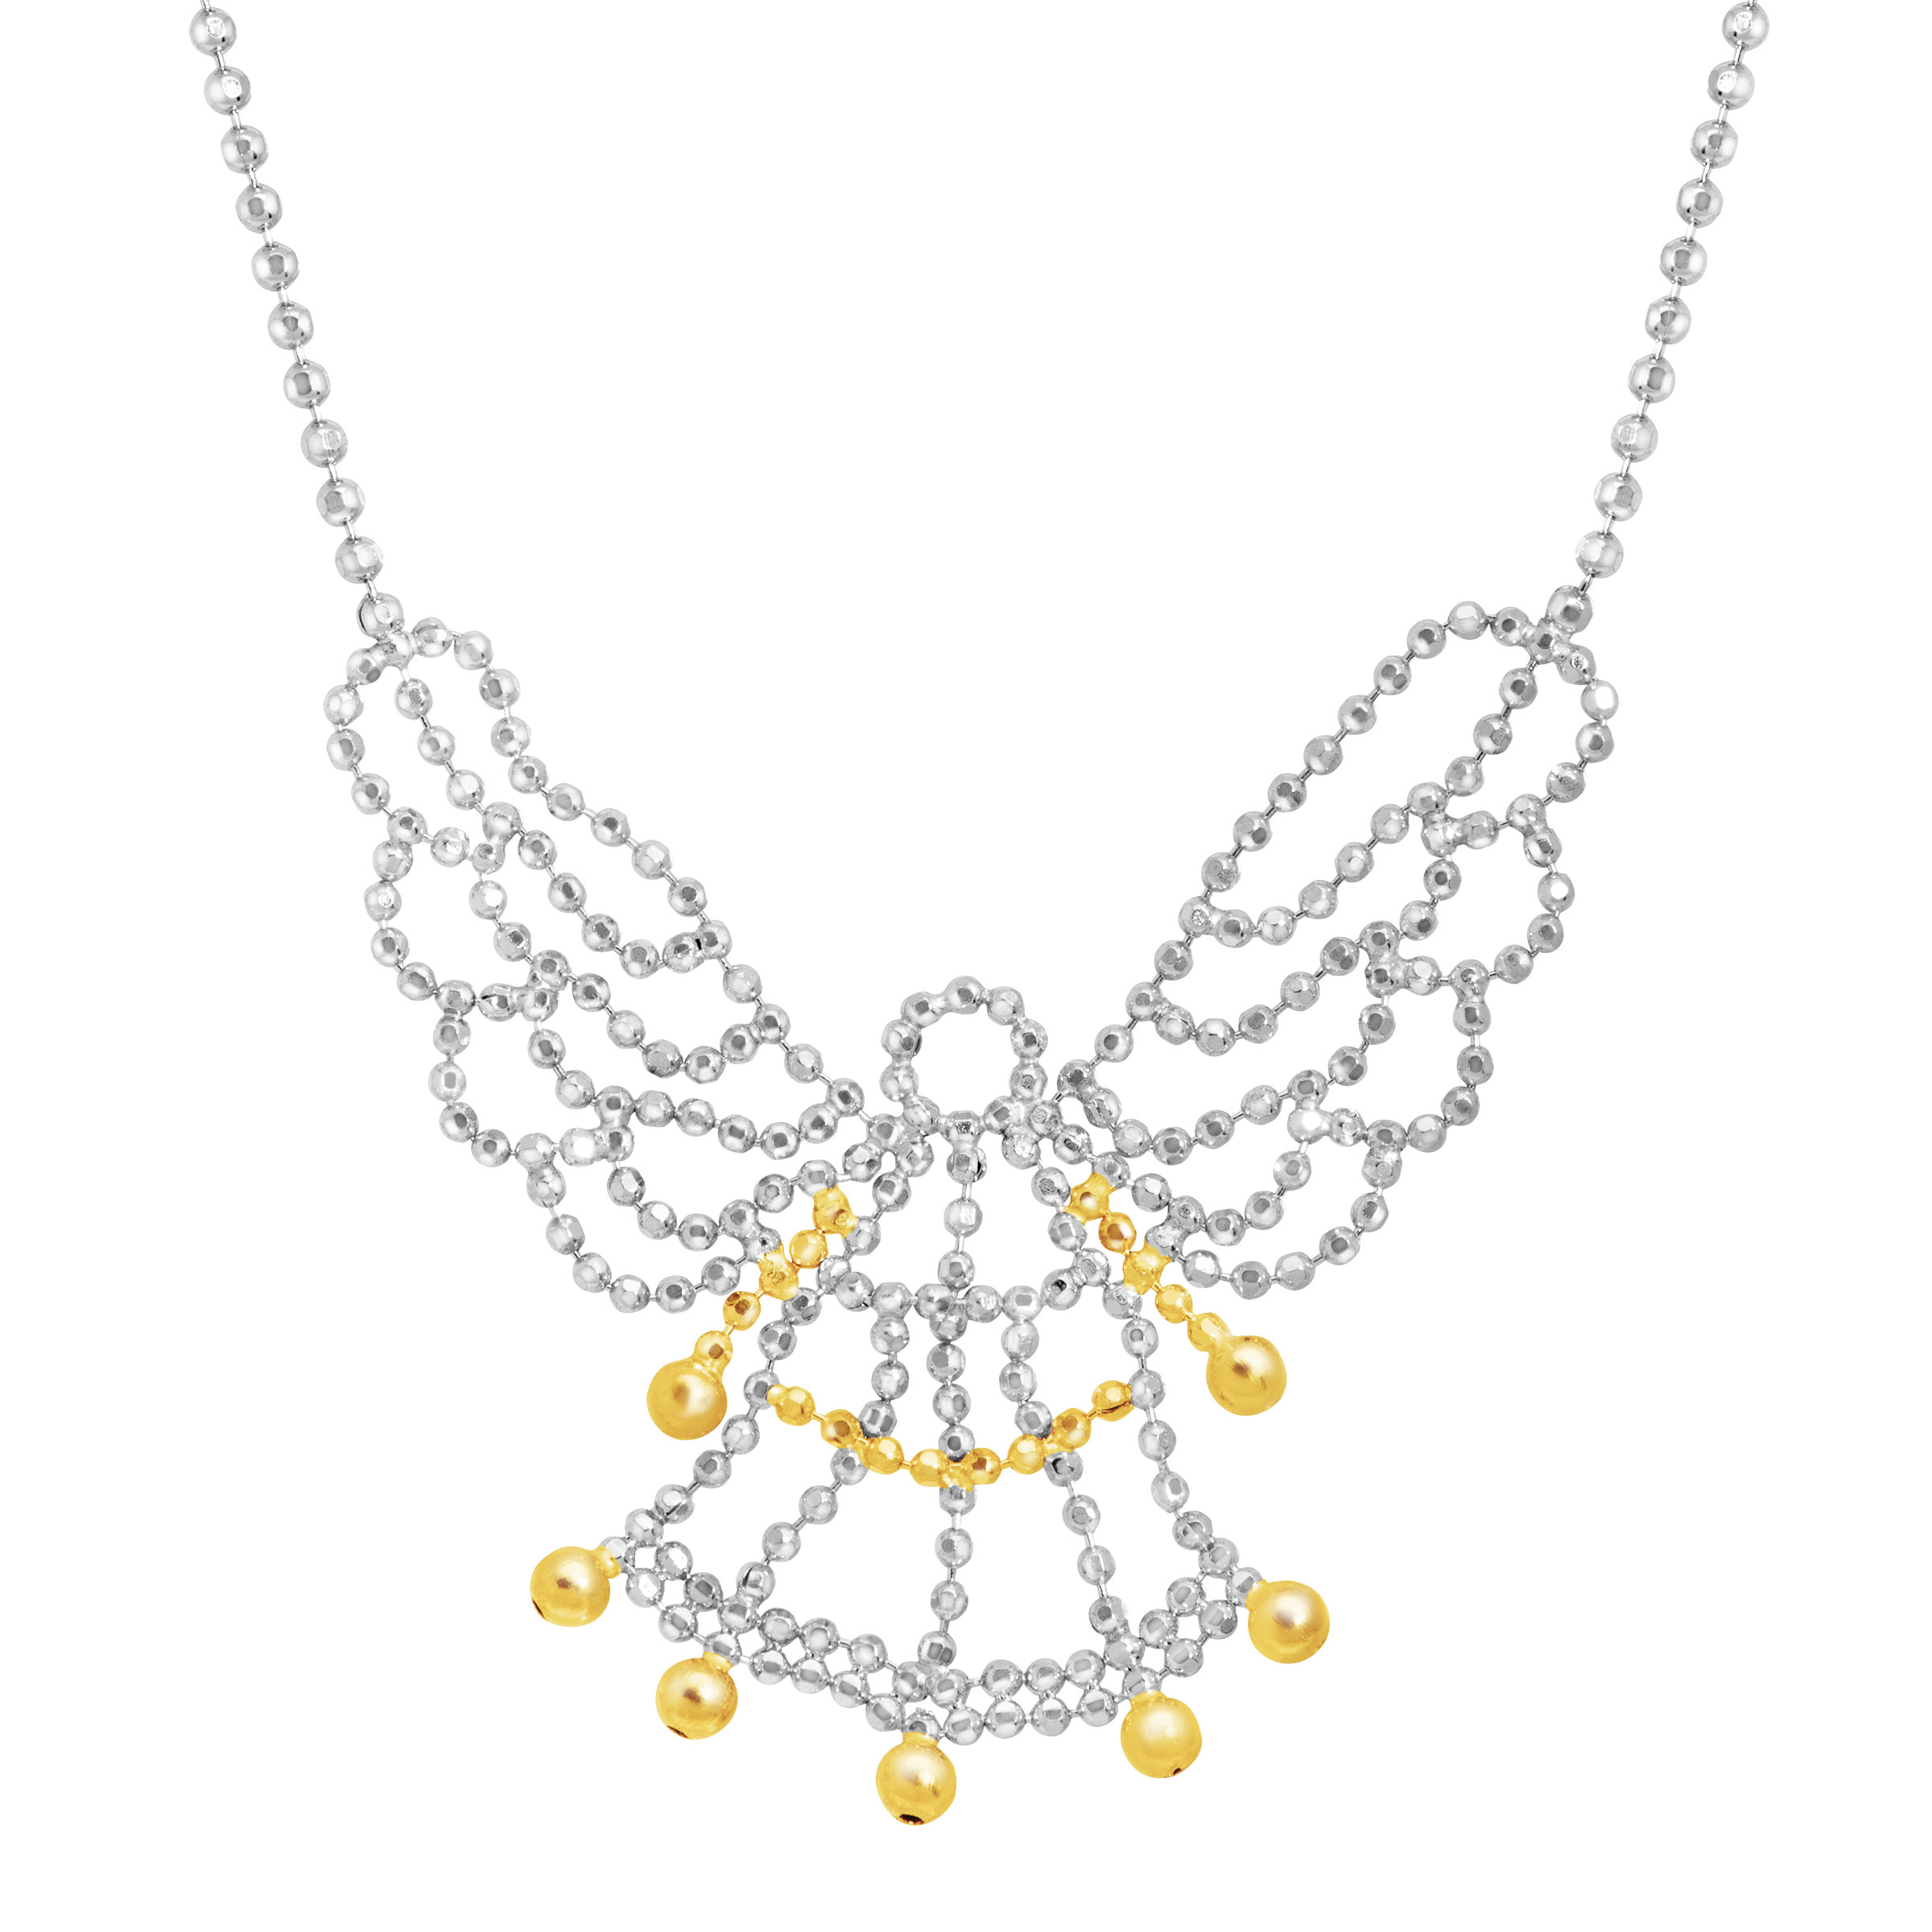 Guardian Angel Beaded Necklace in Sterling Silver & 10kt Gold